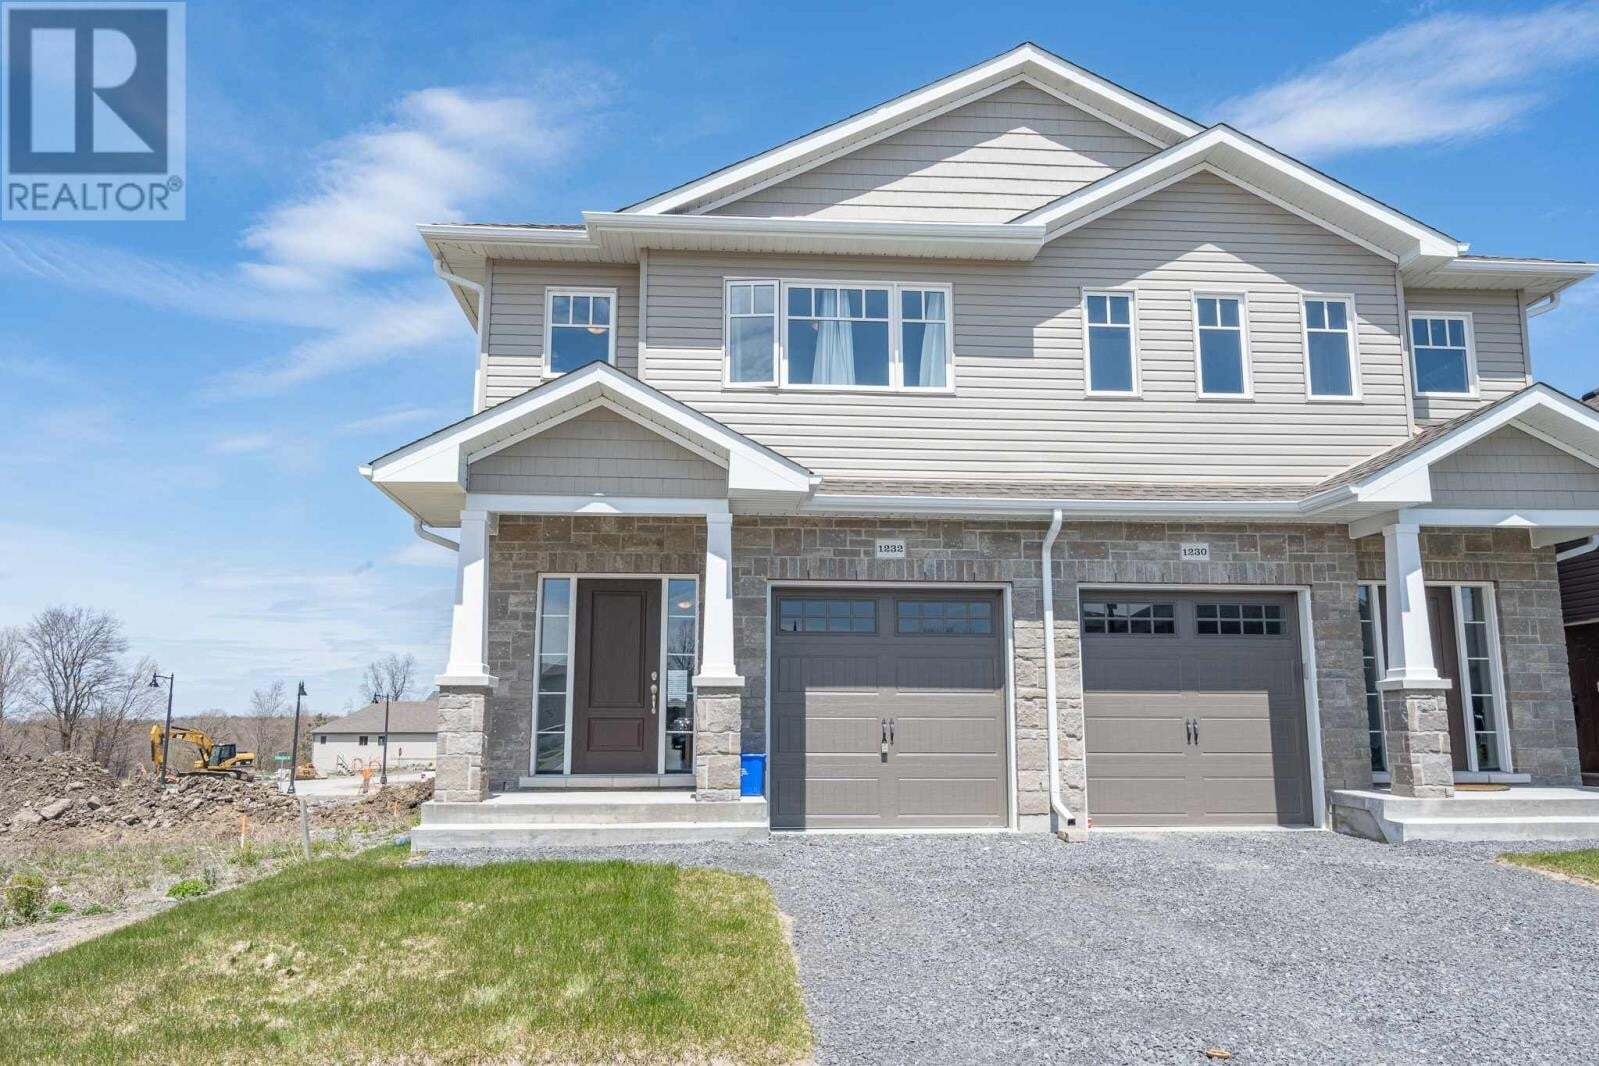 House for sale at 1232 Carfa Cres Kingston Ontario - MLS: K20002417